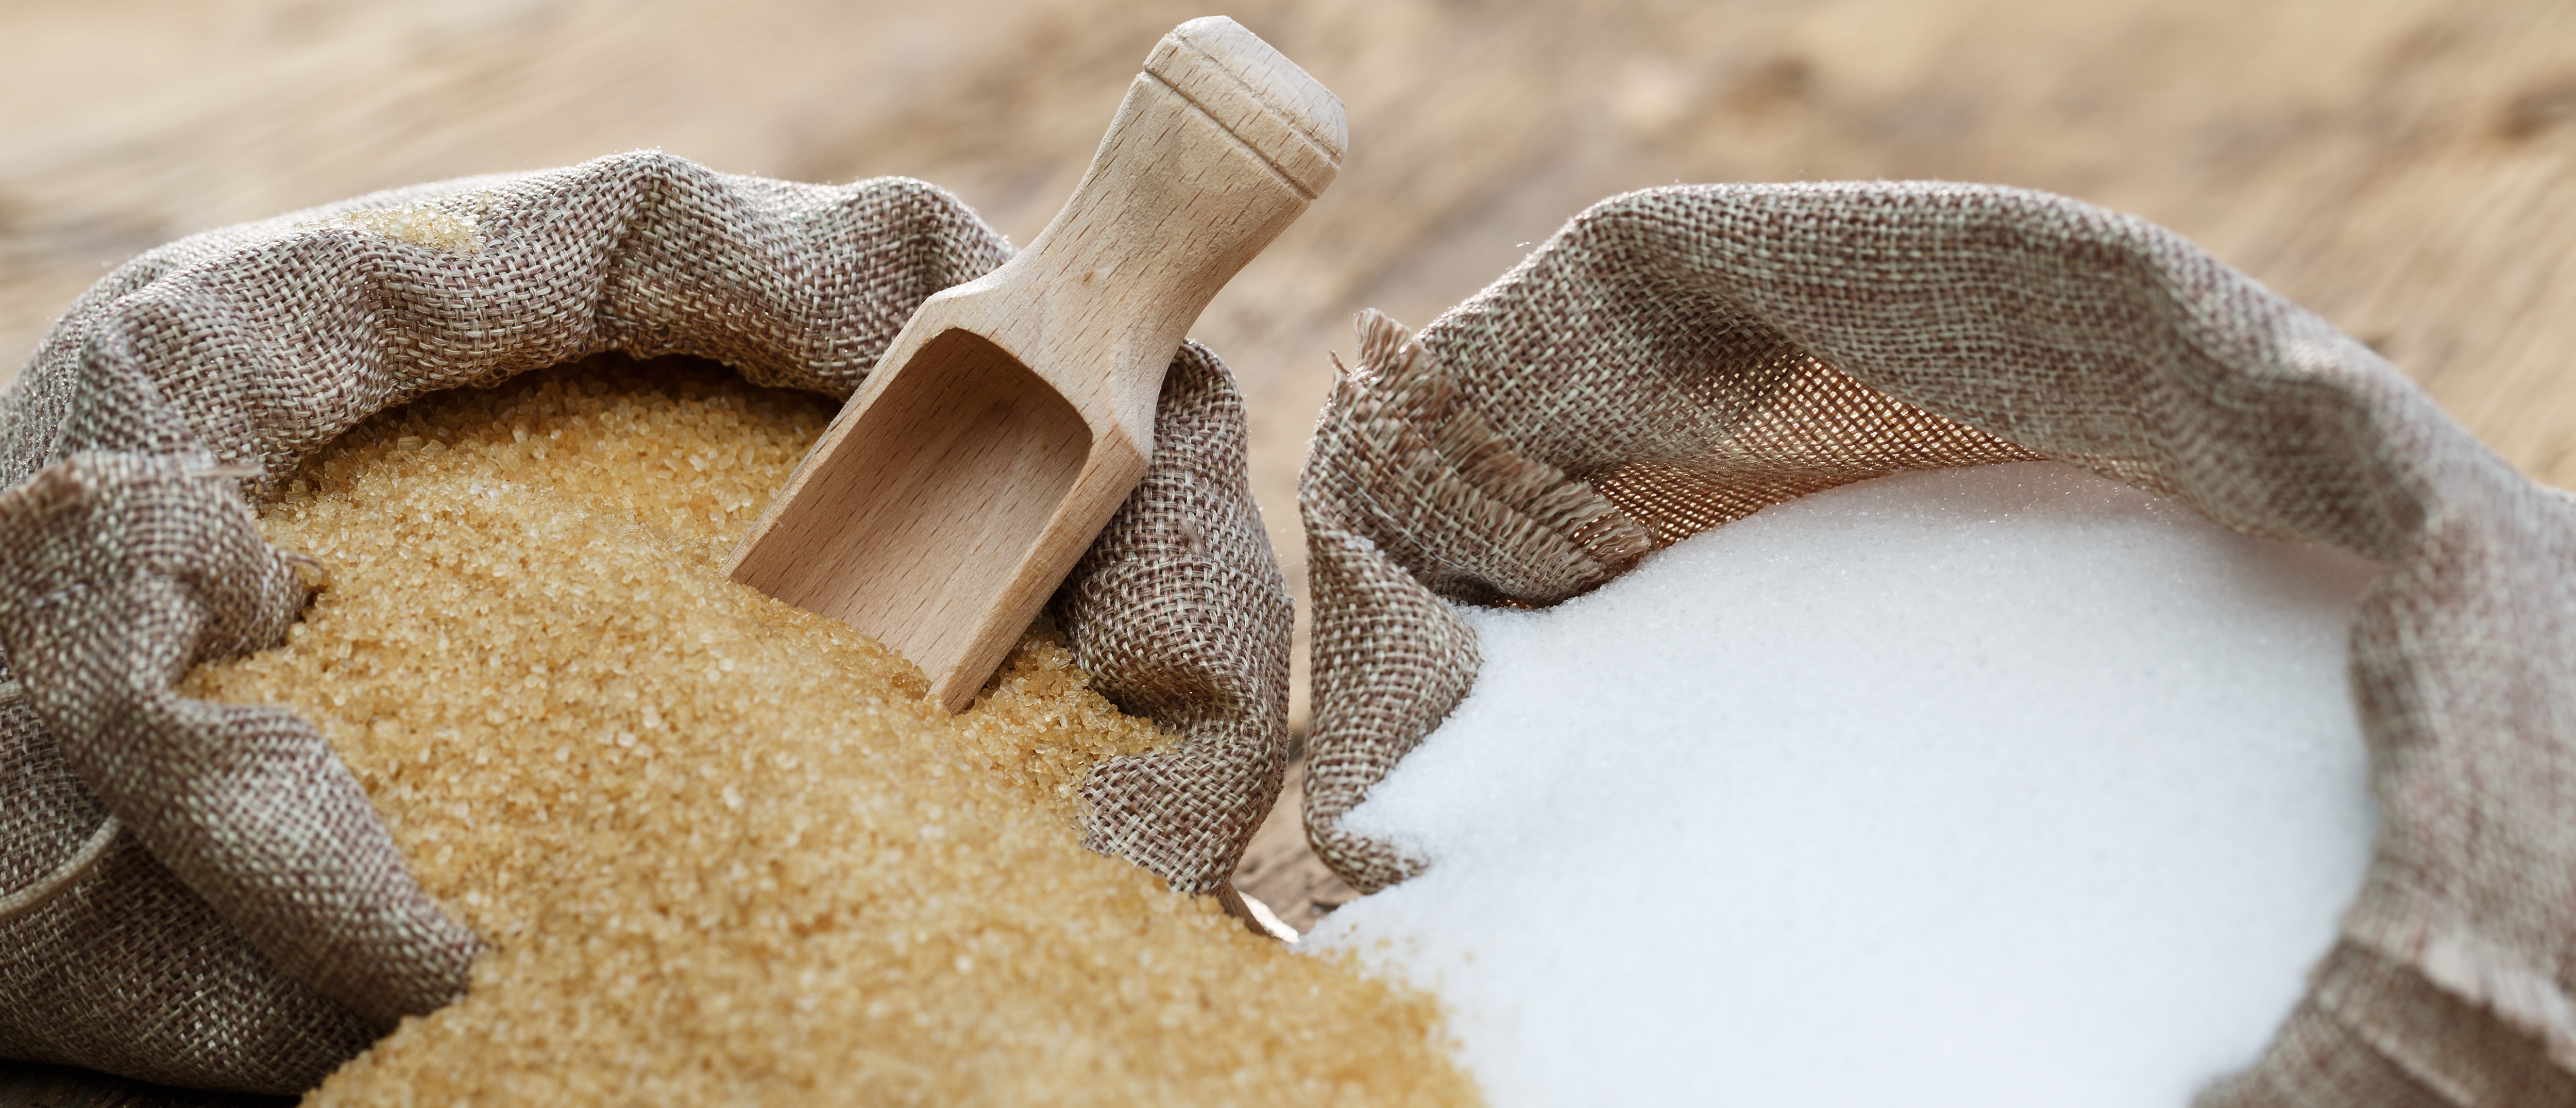 Various types of sugar, brown sugar and white. Shutterstock